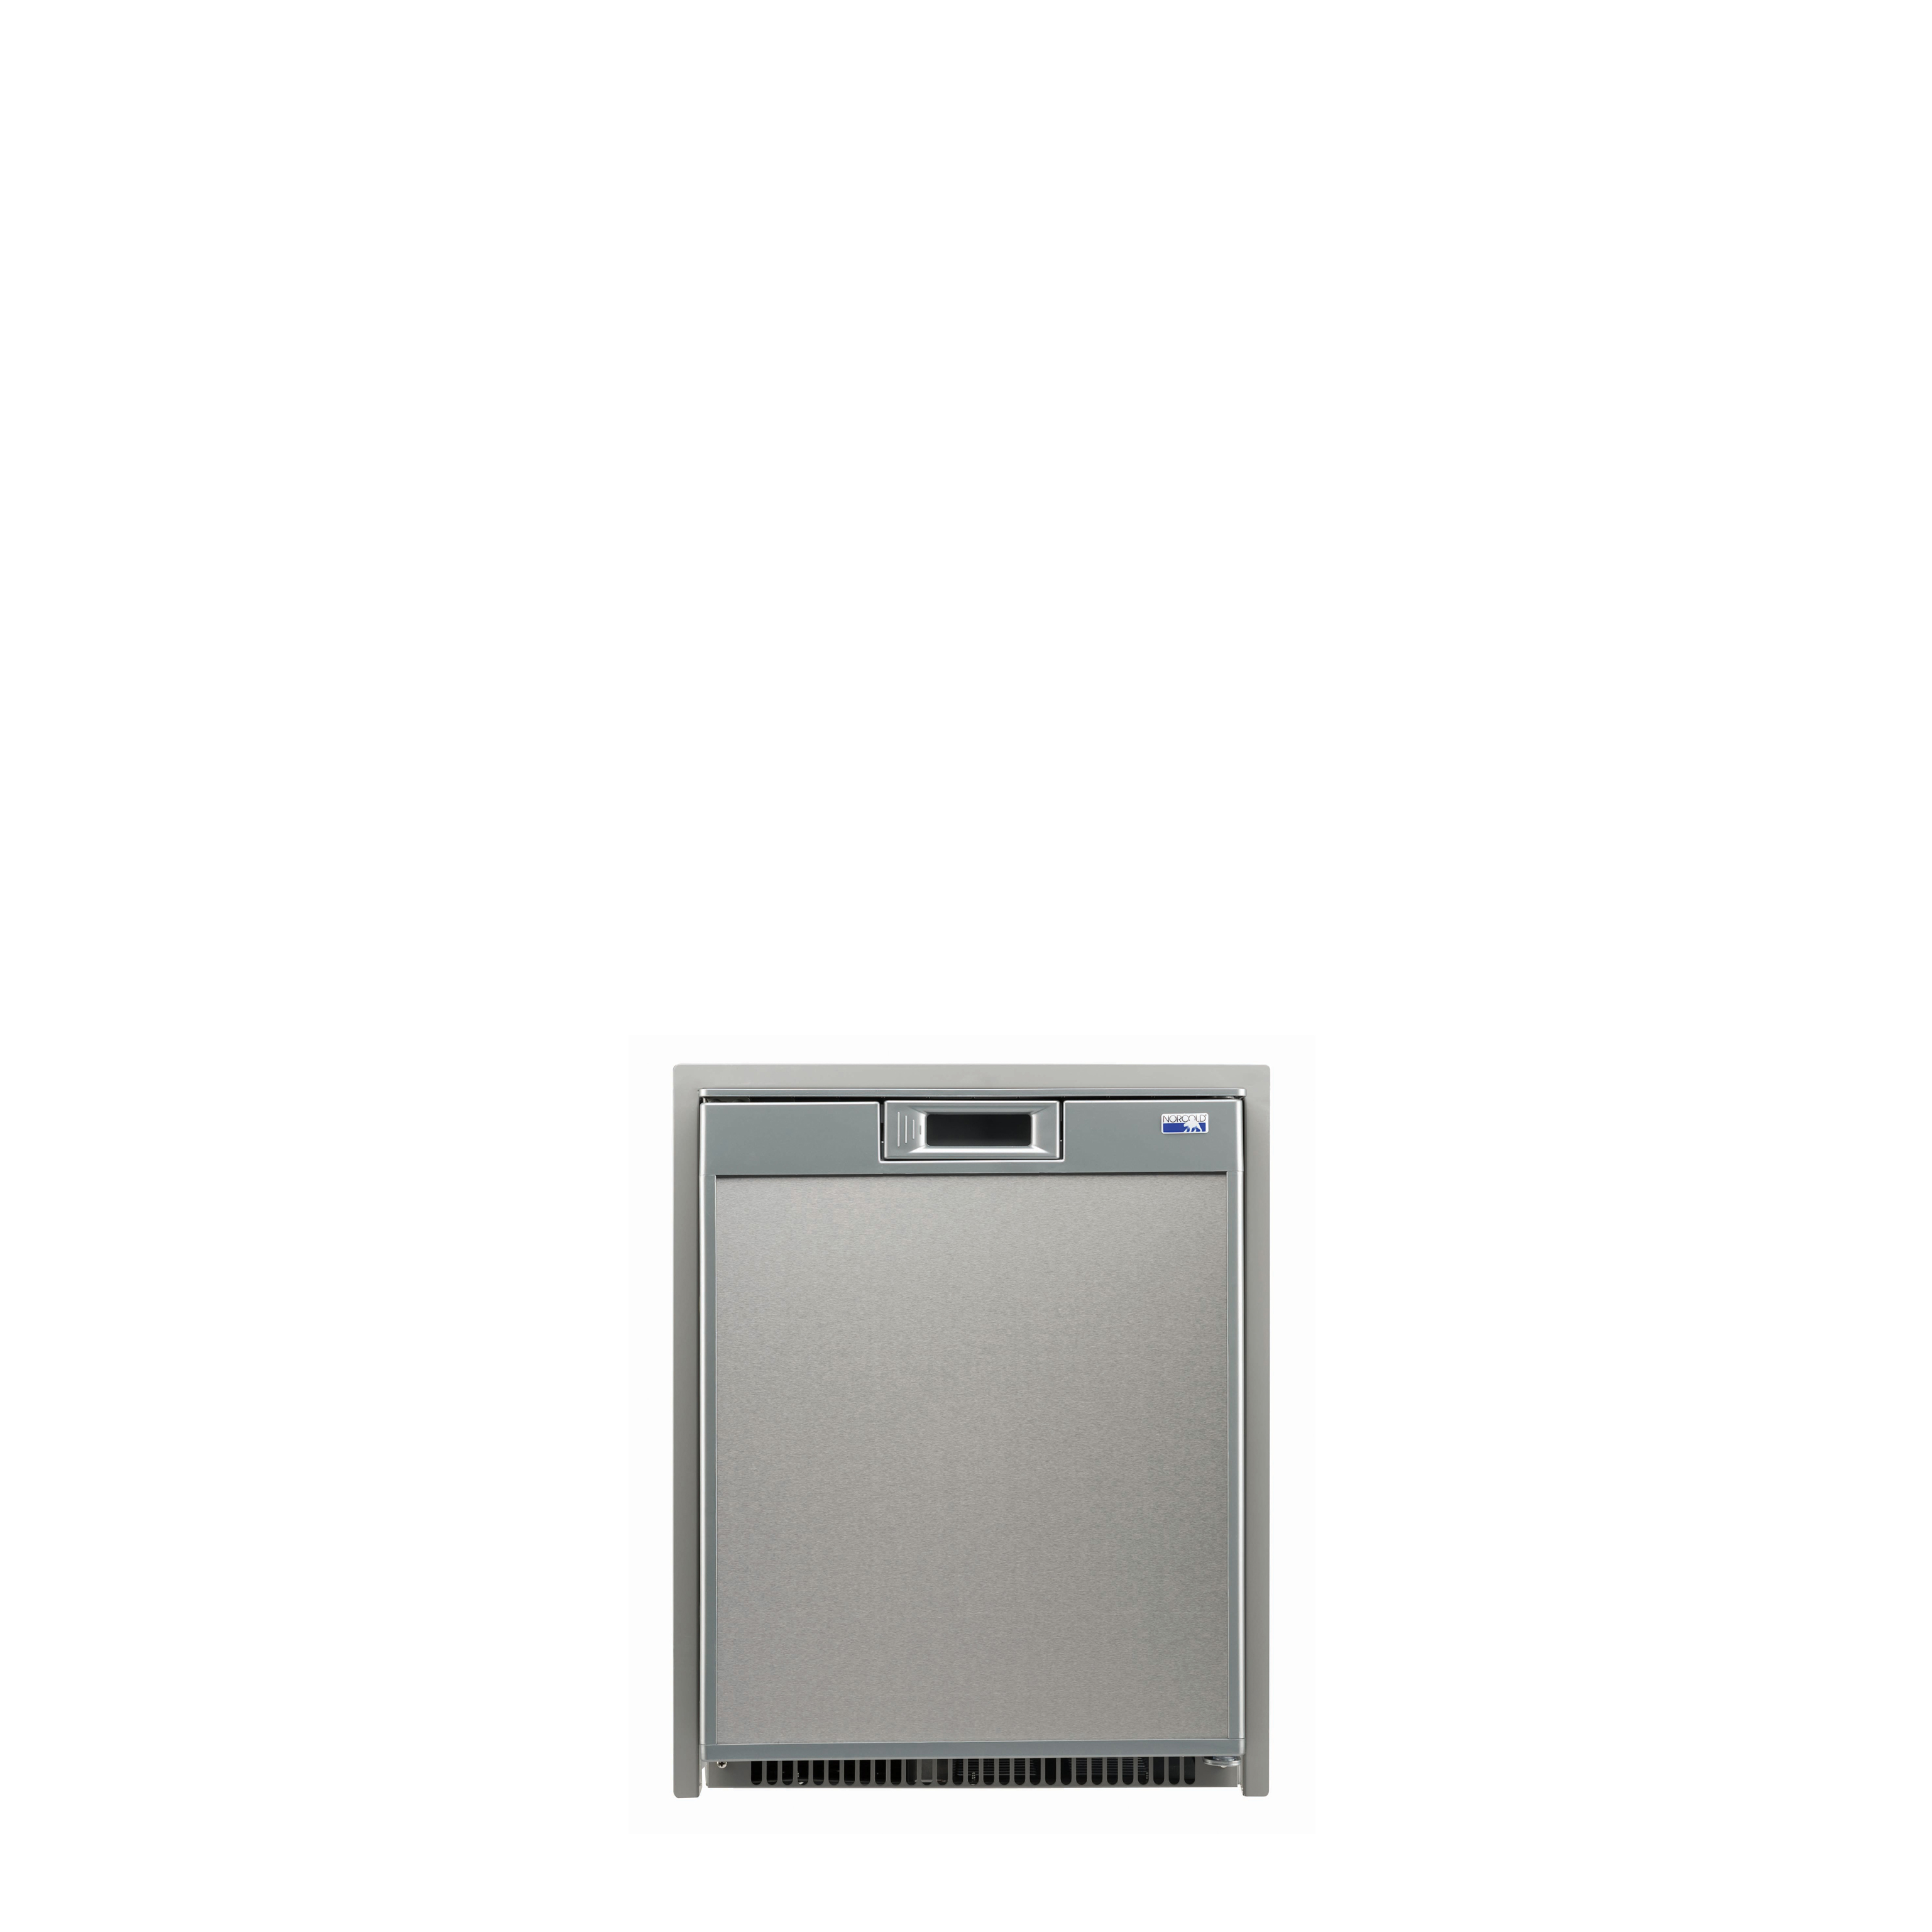 Norcold NR740 – The 1 7 cubic feet AC/ DC refrigerator